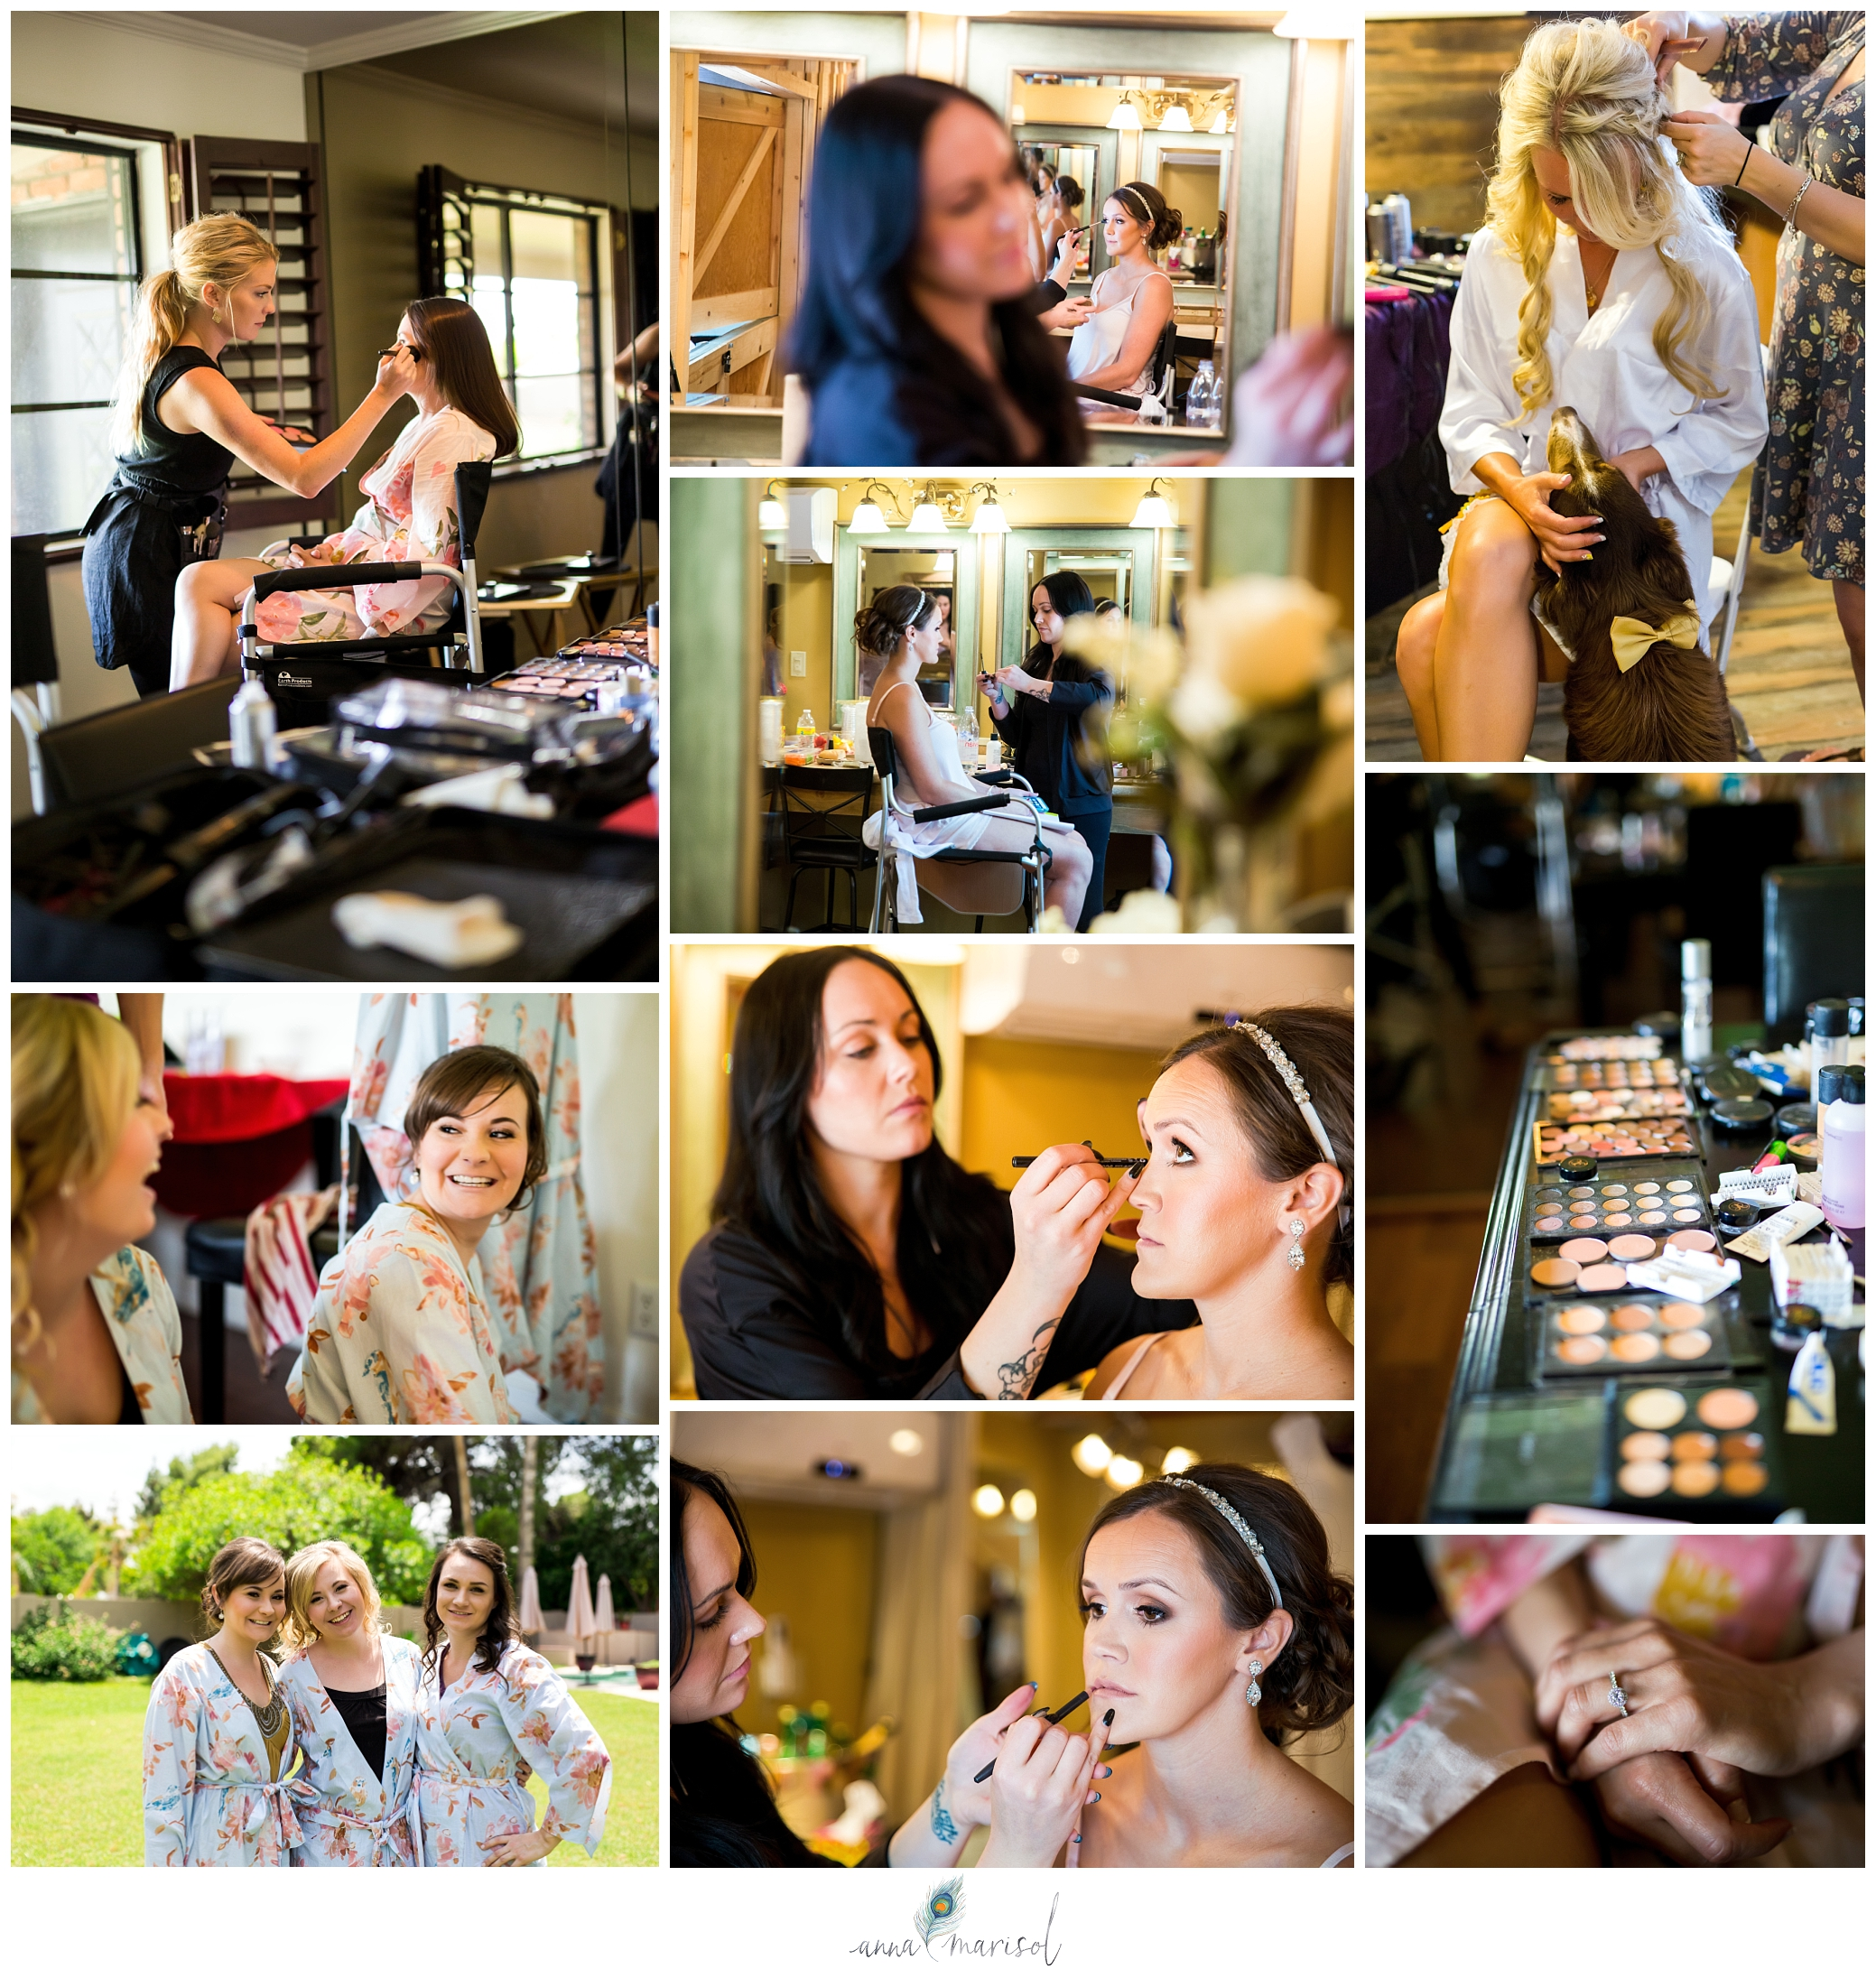 Bride tips getting ready for wedding day